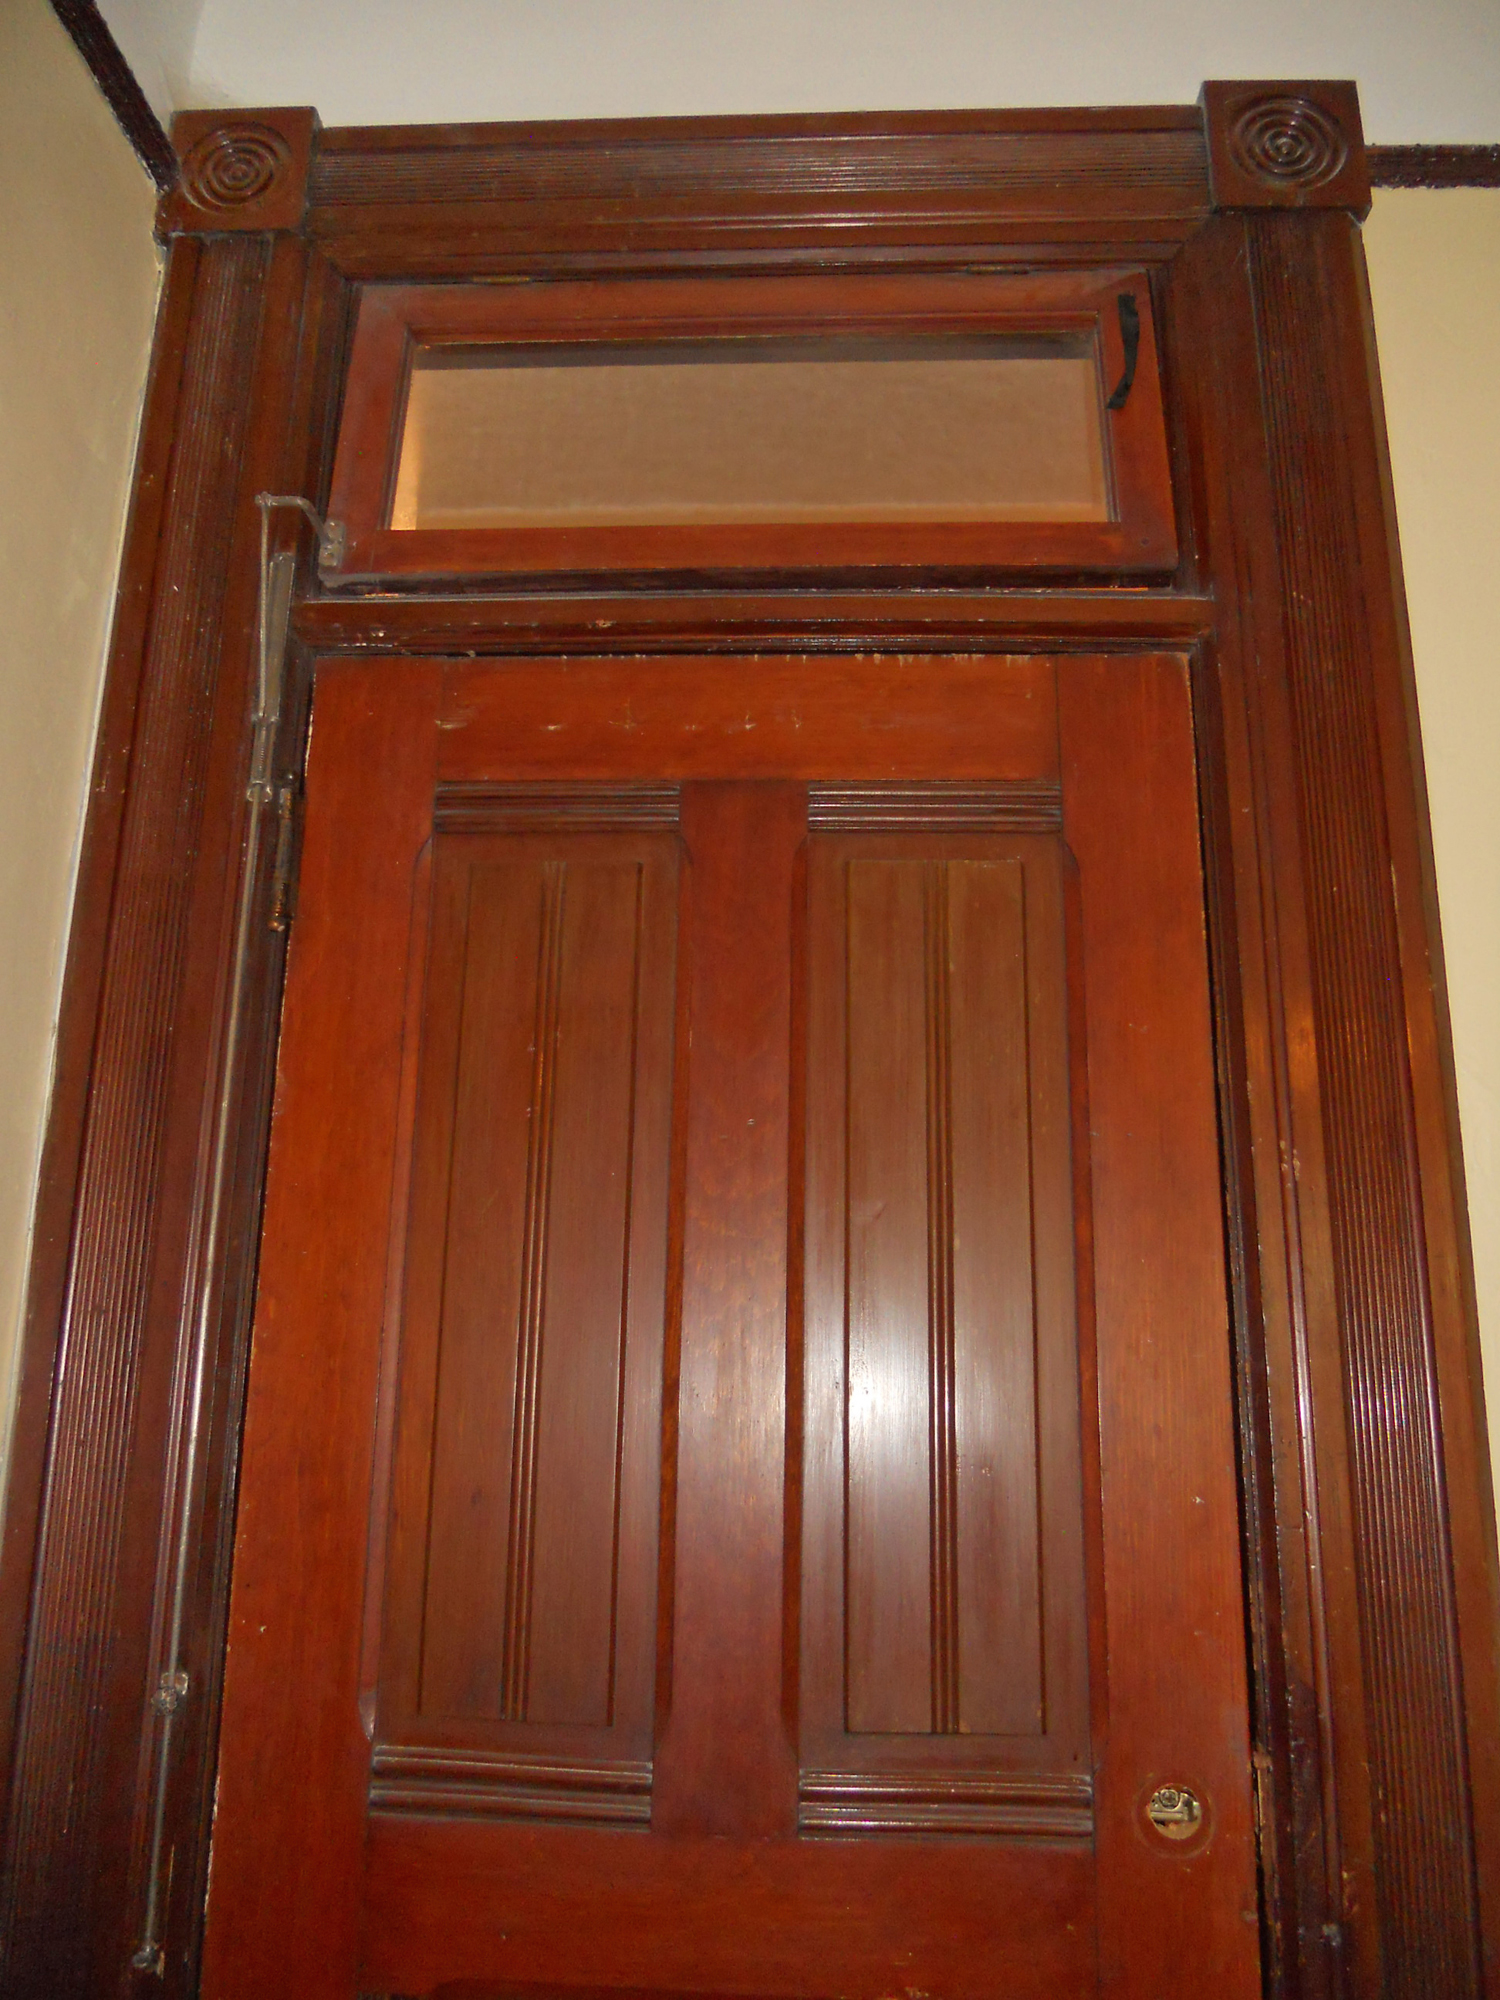 Transom Windows Above Upstairs Bedroom Doors With Working Hardware